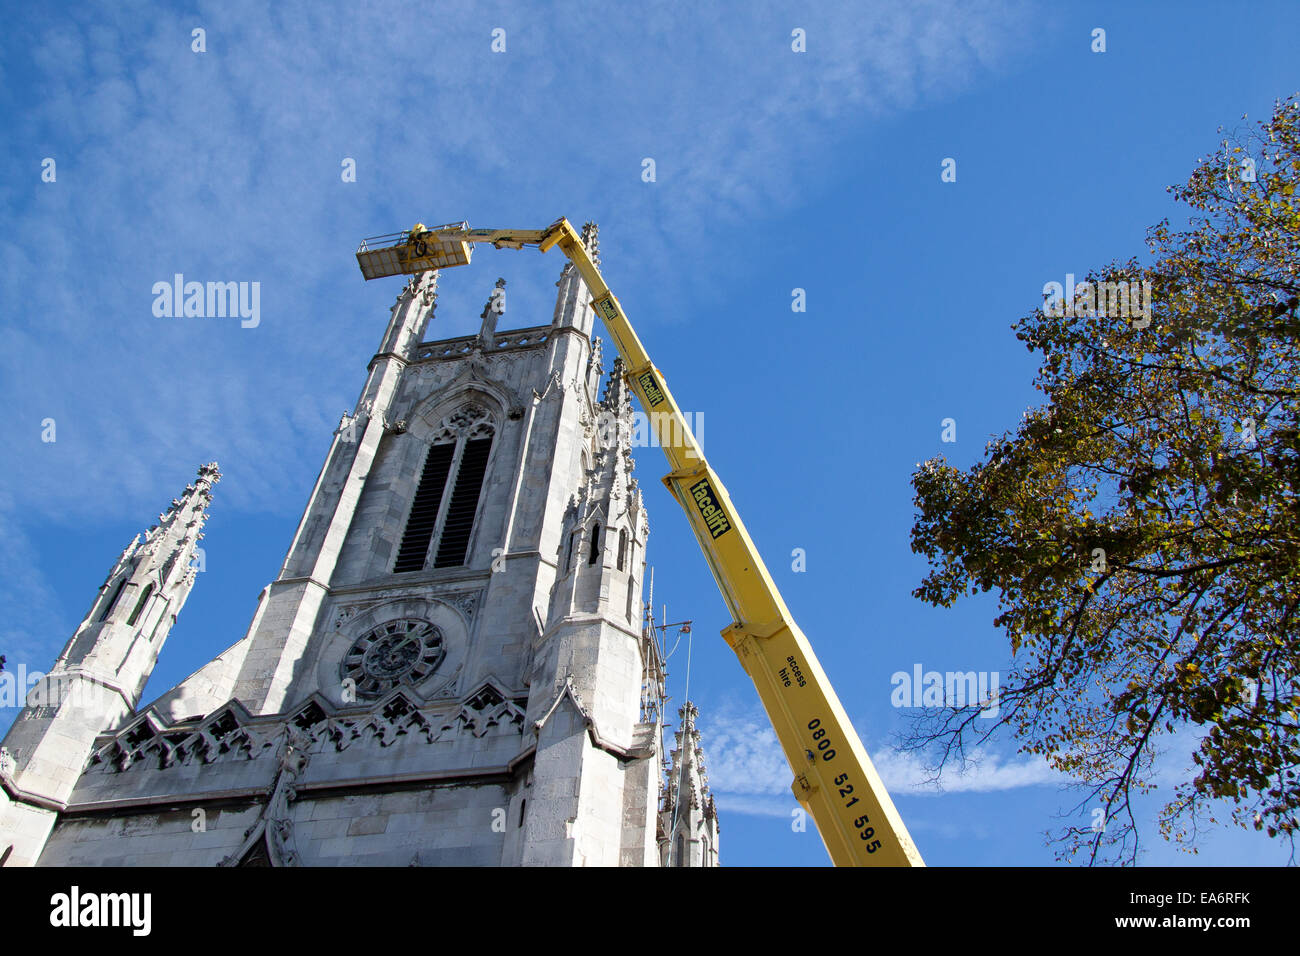 A tall cherry picker and access platform from Facelift servicing St Peters church tower, Brighton Stock Photo